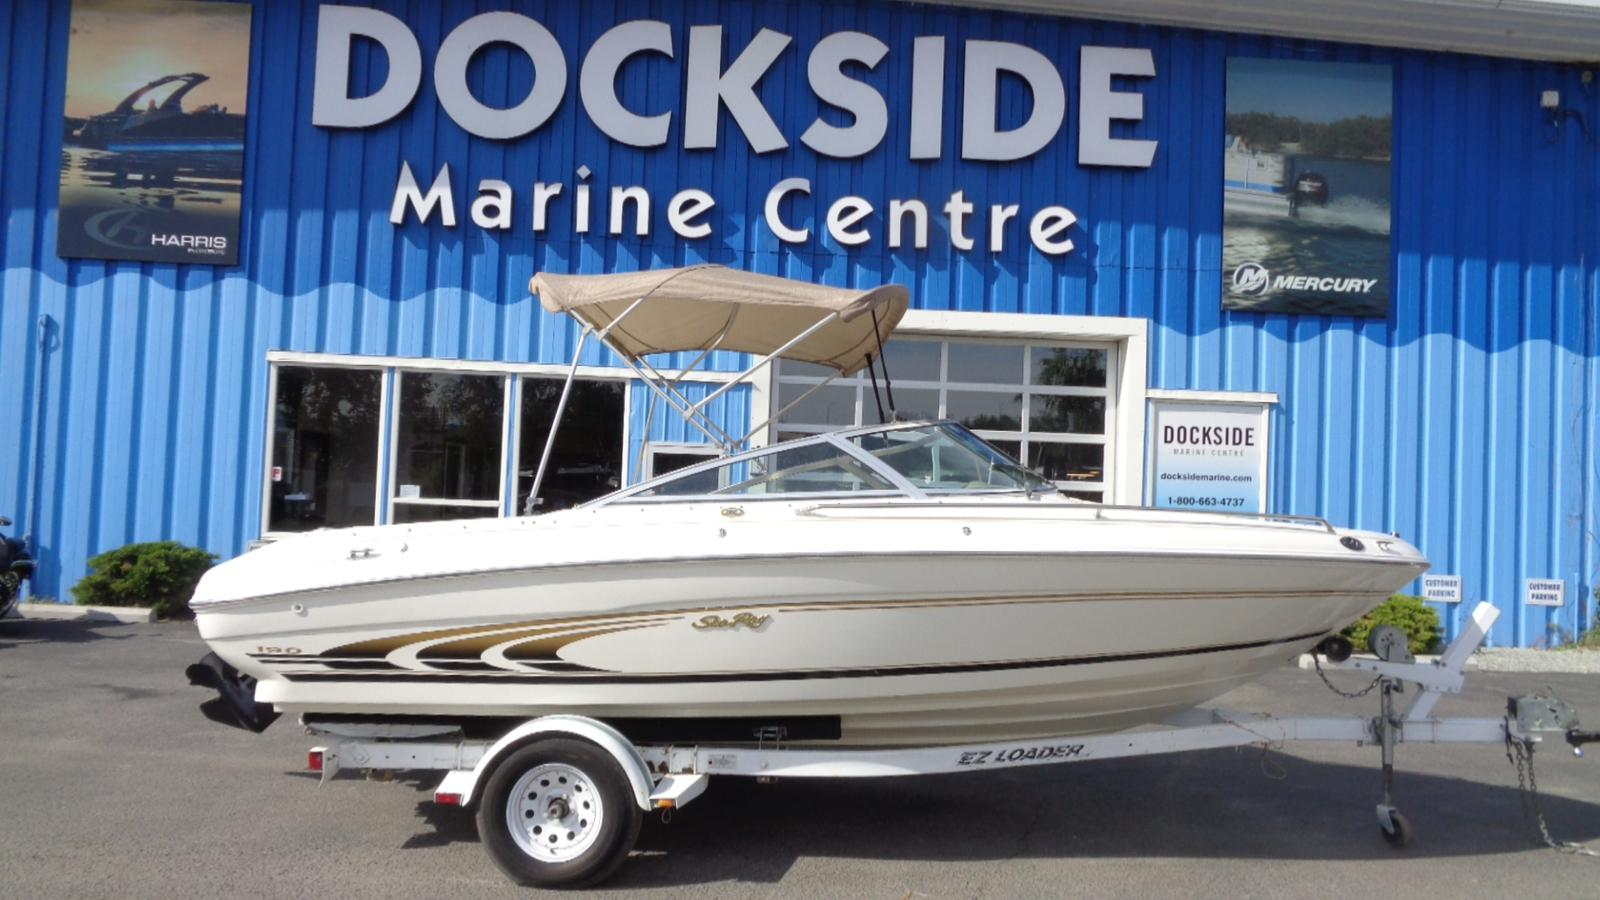 For Sale: 1998 Sea Ray 190 Br 19ft<br/>Dockside Marine Centre, LTD.